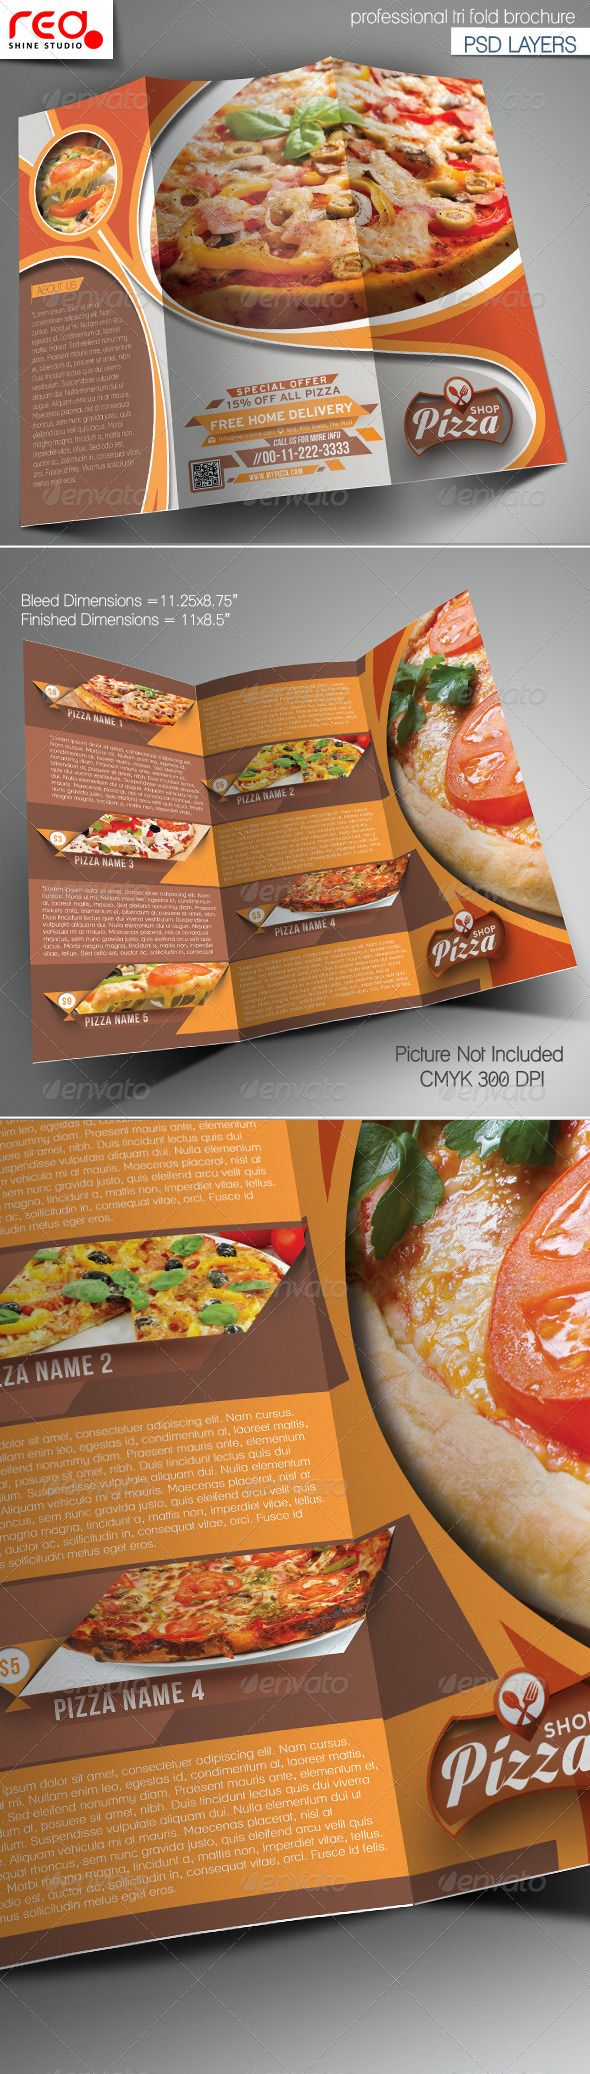 marketing pizza industry Clear, accurate us market analysis for business plans, strategy, and investments in the full-service restaurants industry.